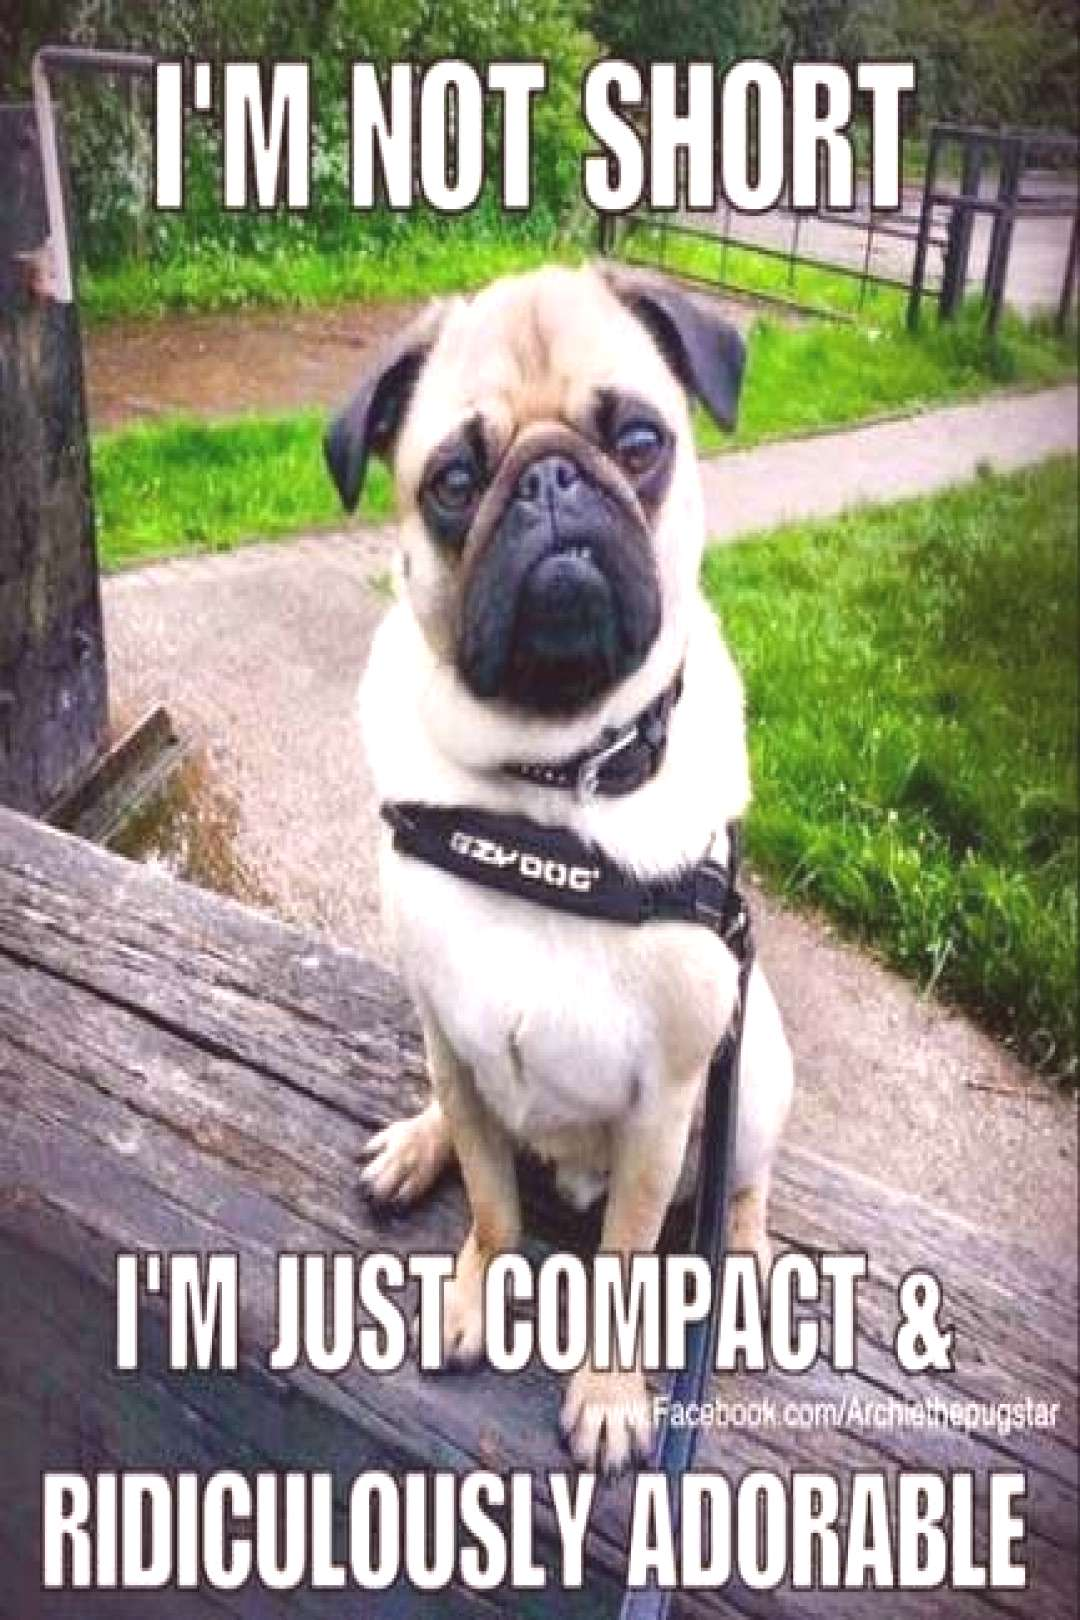 Trendy dogs funny pug smile 64 ideas Trendy dogs funny pug smile 64 ideas